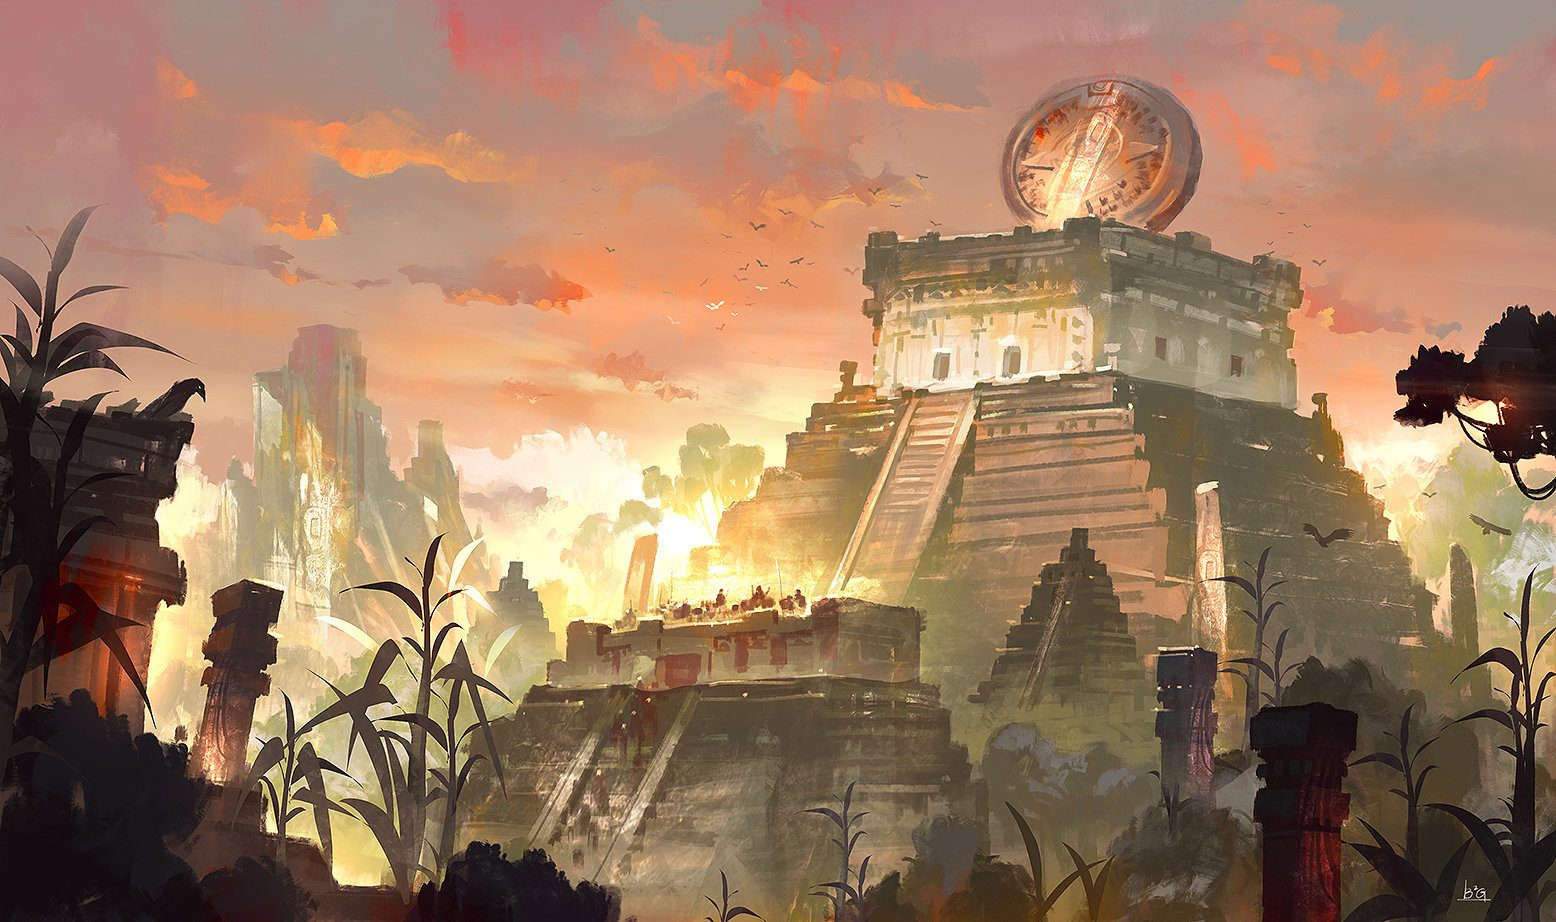 10 major achievements of the ancient aztec civilization - HD 1556×922